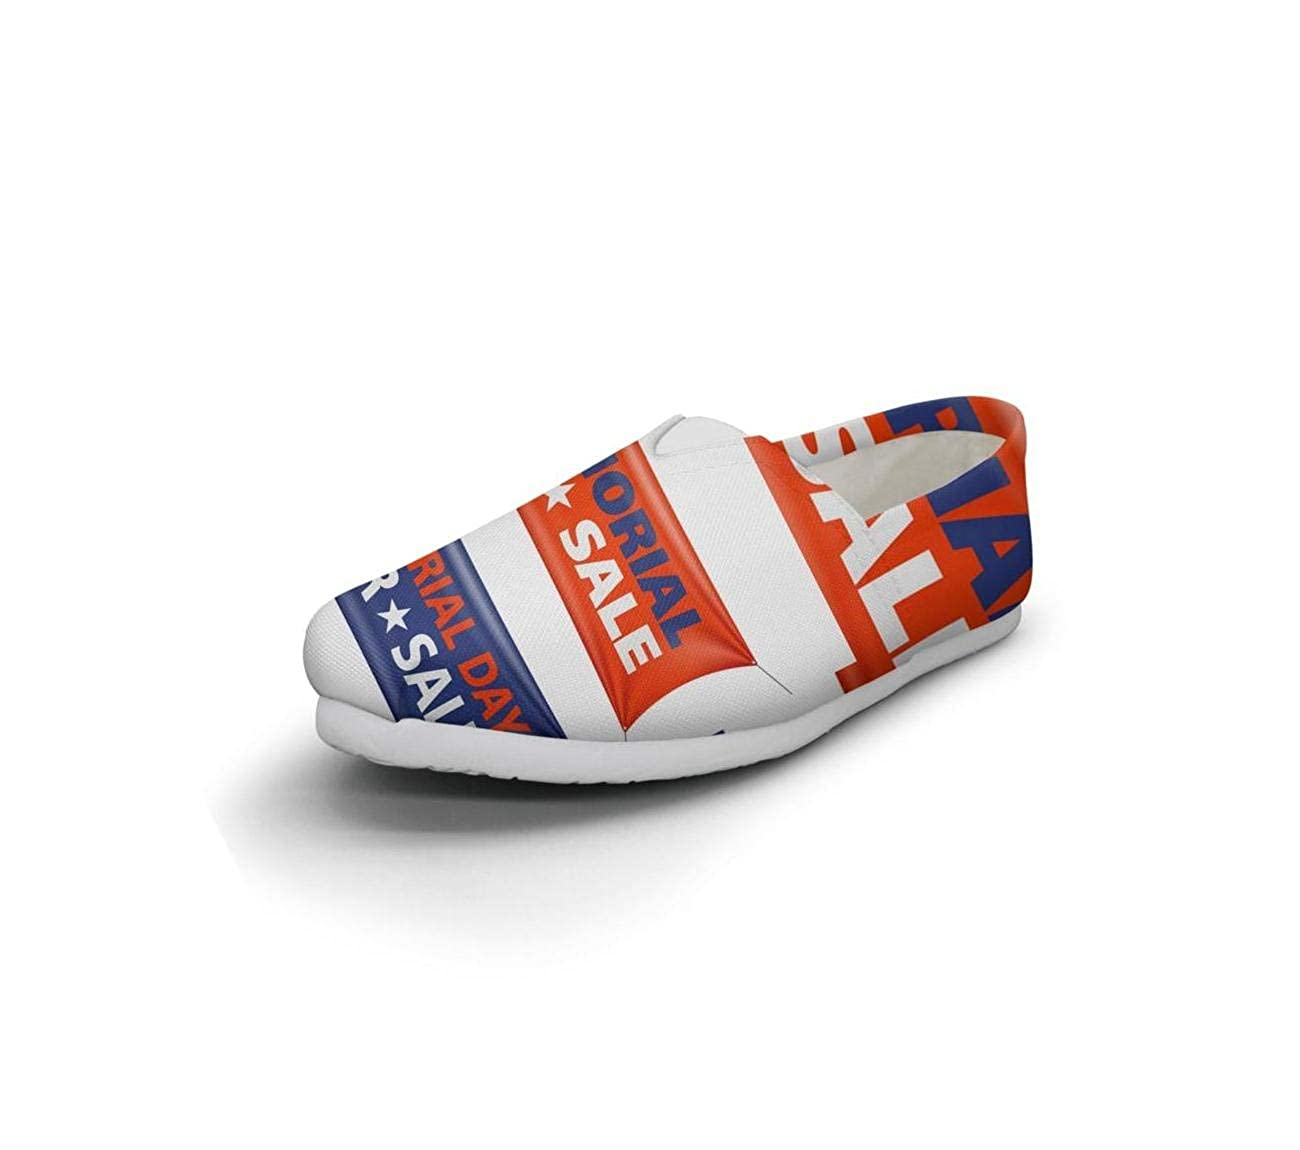 nkfbx Memorial Day American Flag Casual Slip-On Canva Shoes for Women Travel